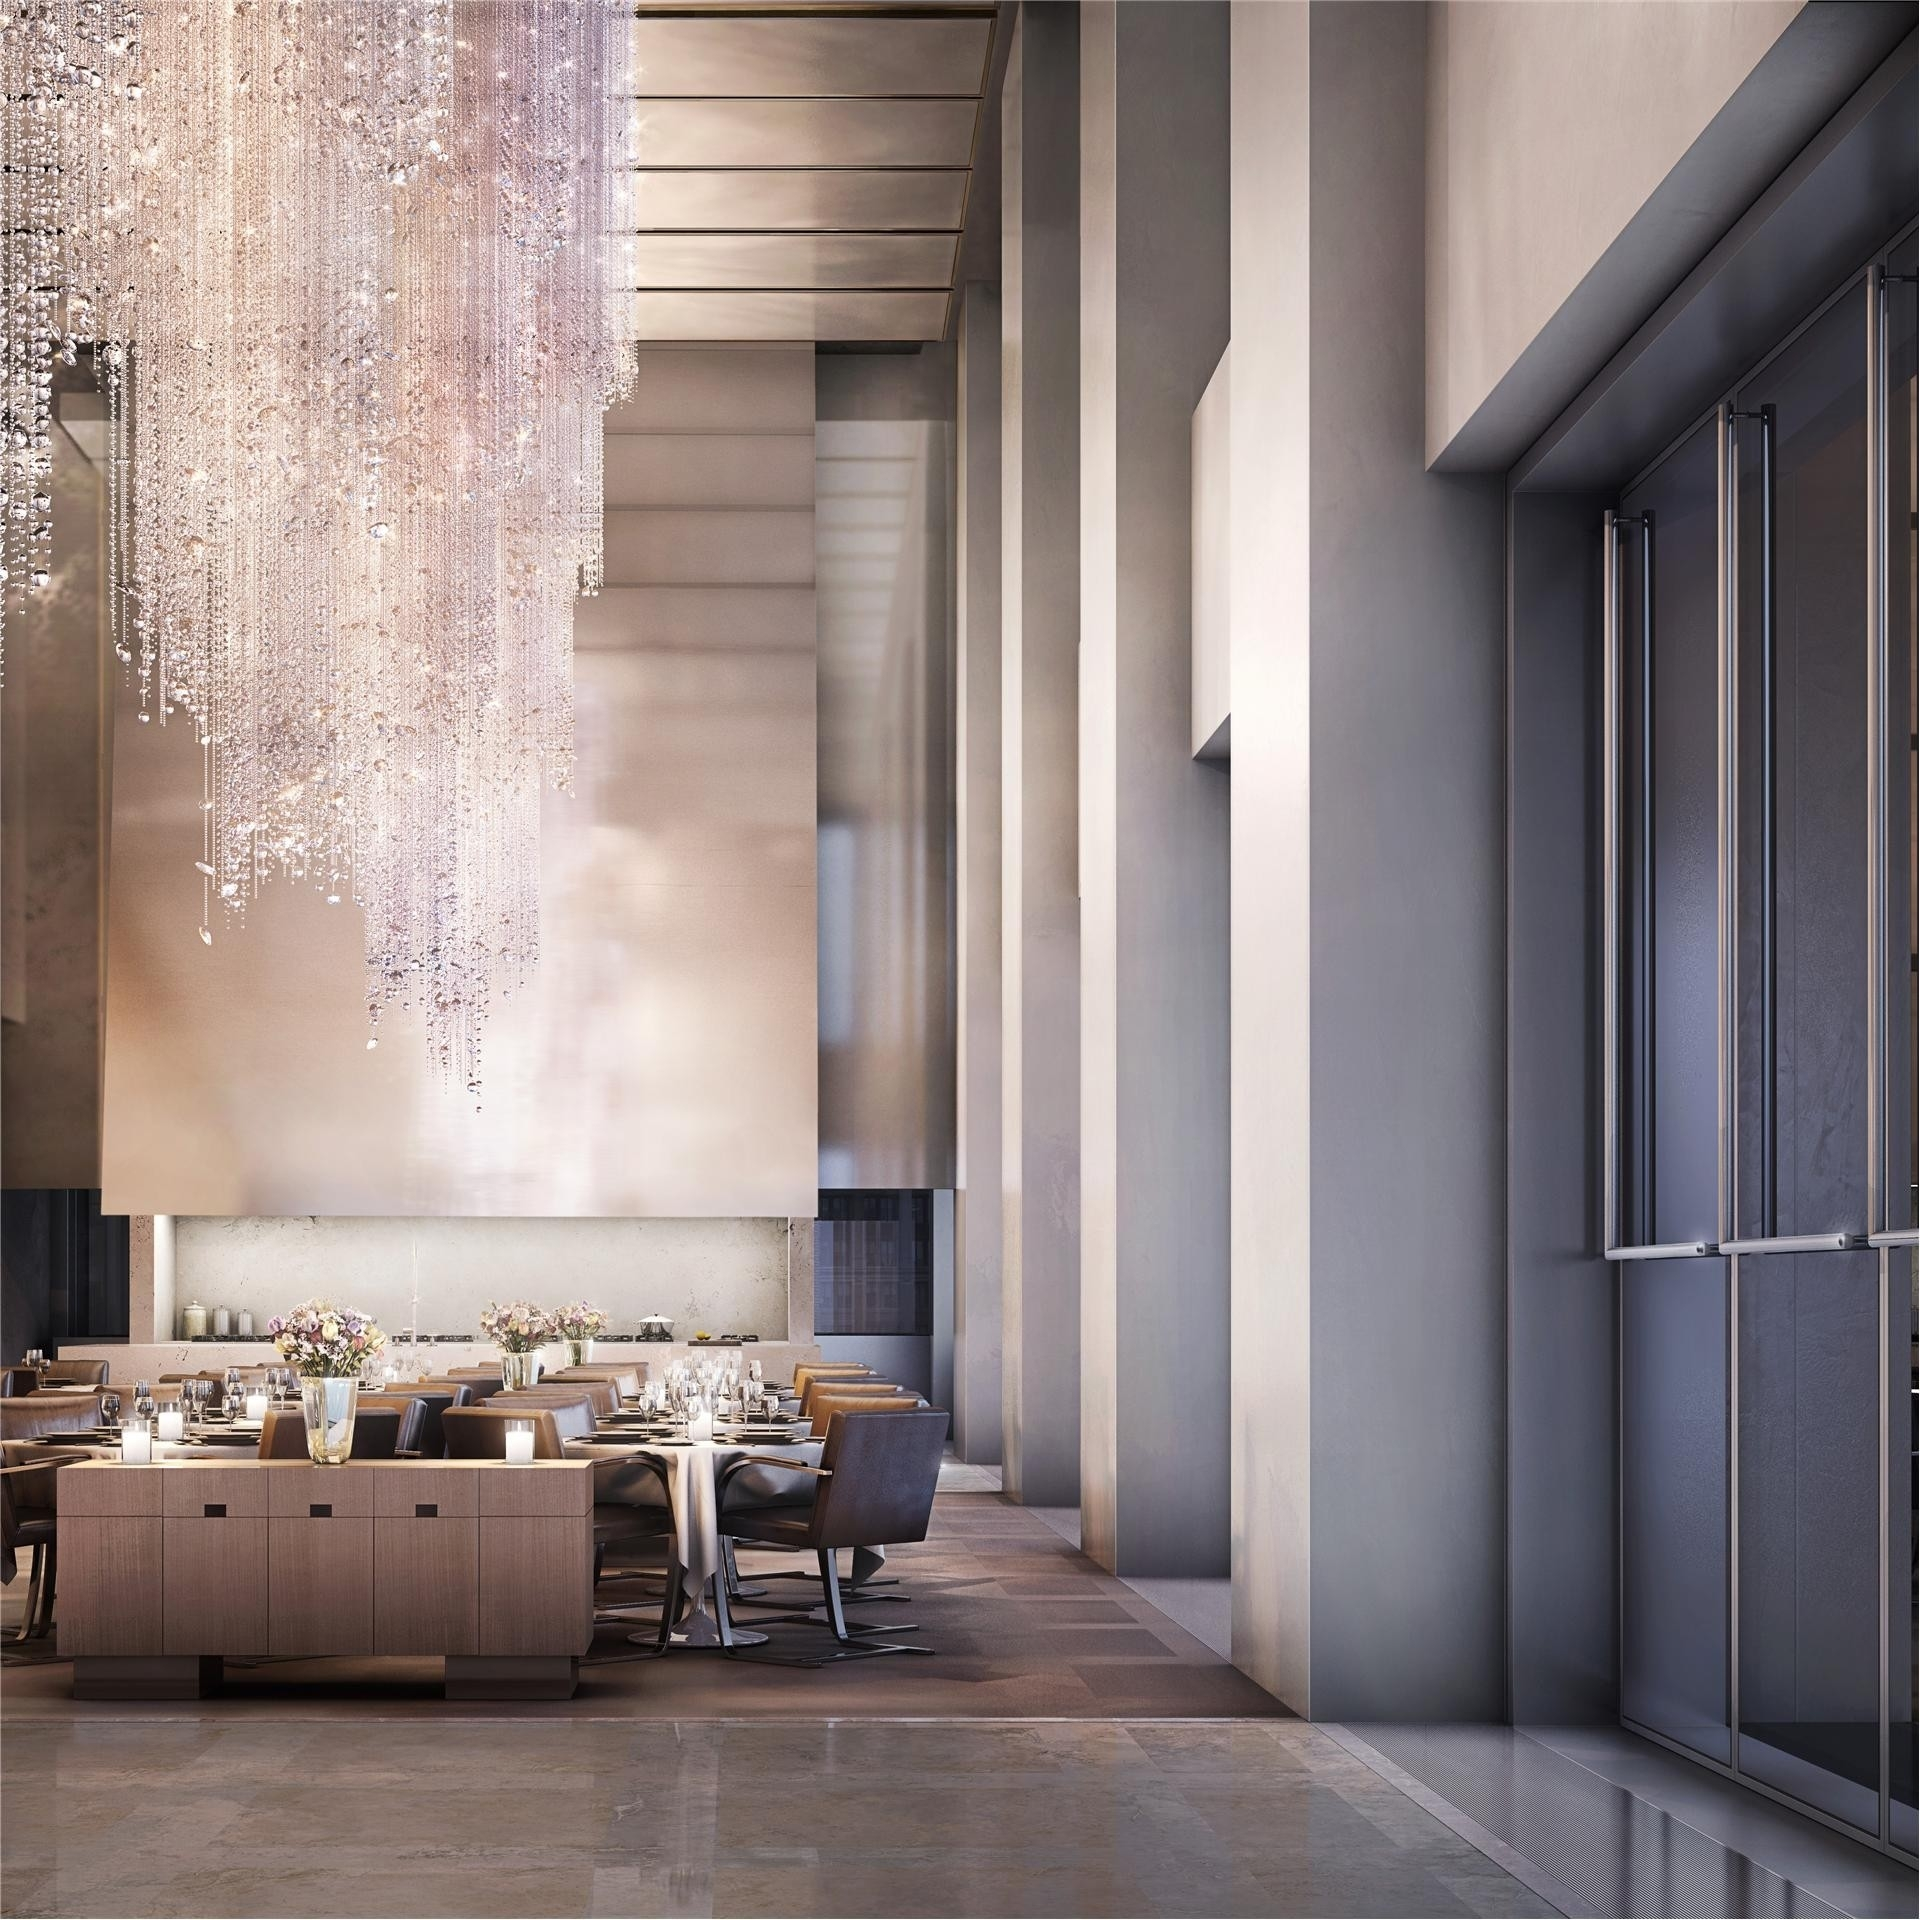 17. Condominiums for Sale at 432 PARK AVE , 82FL Midtown East, New York, NY 10022